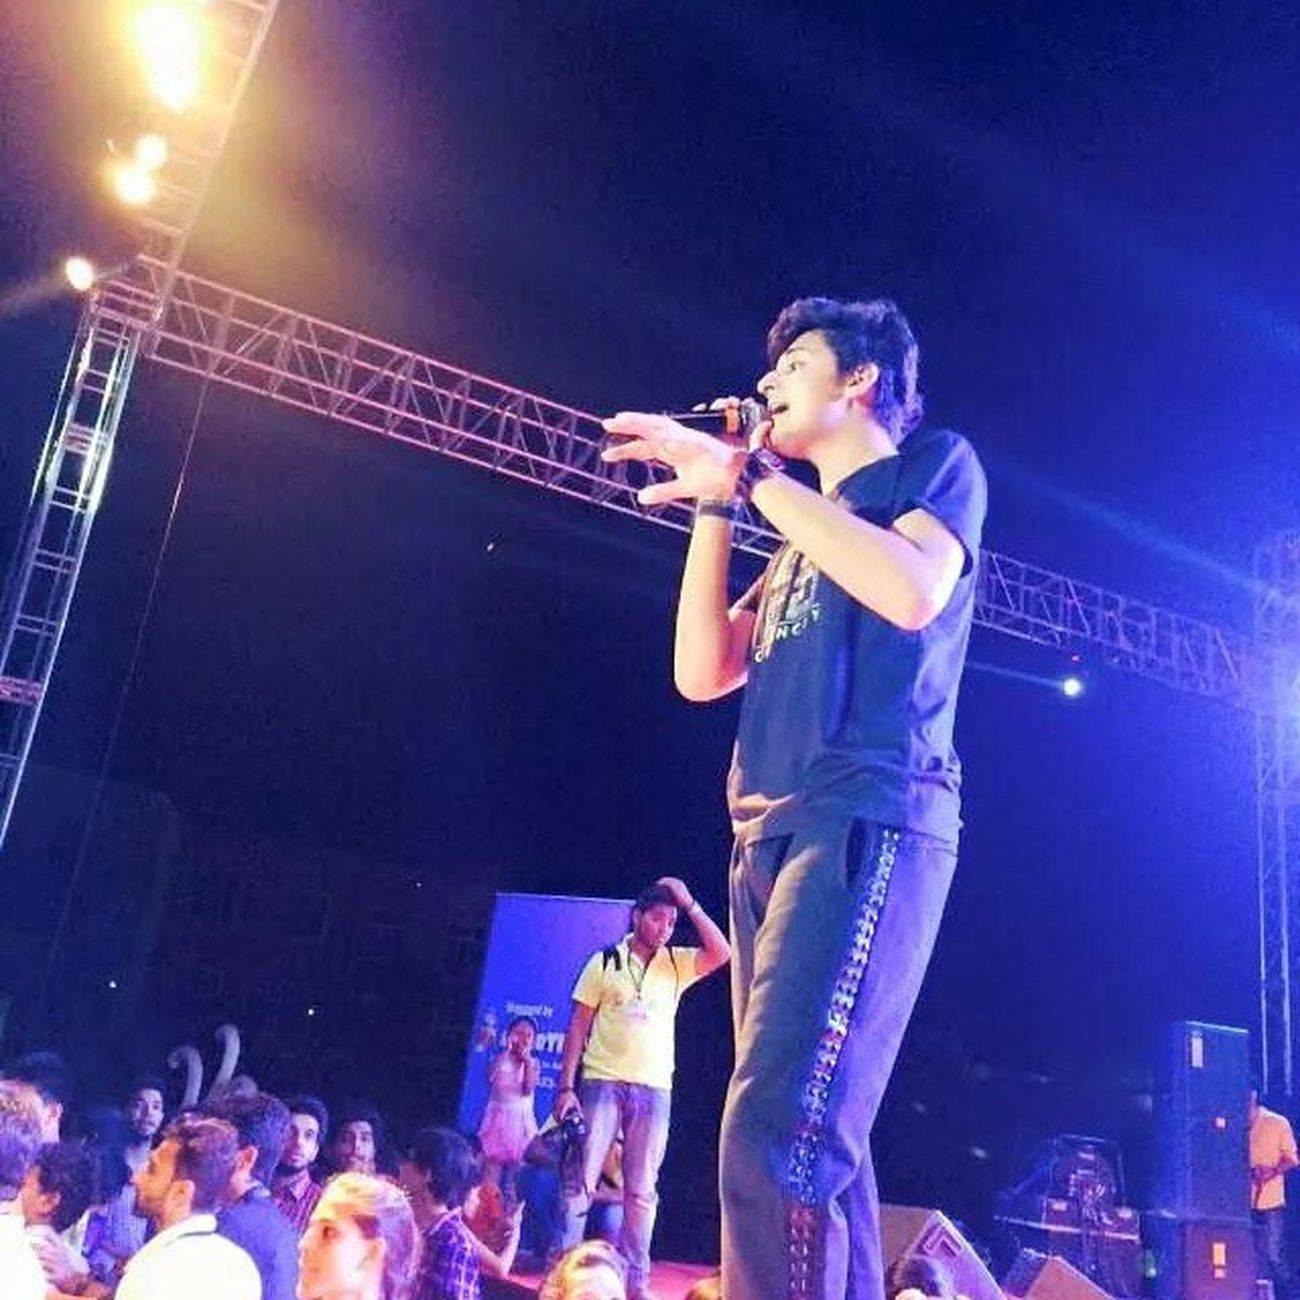 Gabbu At Bhilaiconcert 22march2015 Herock Awesomecrowd Spreadlove 💙💙💙💙@darshanravaldz @chinmayroydz @freedomdsharma